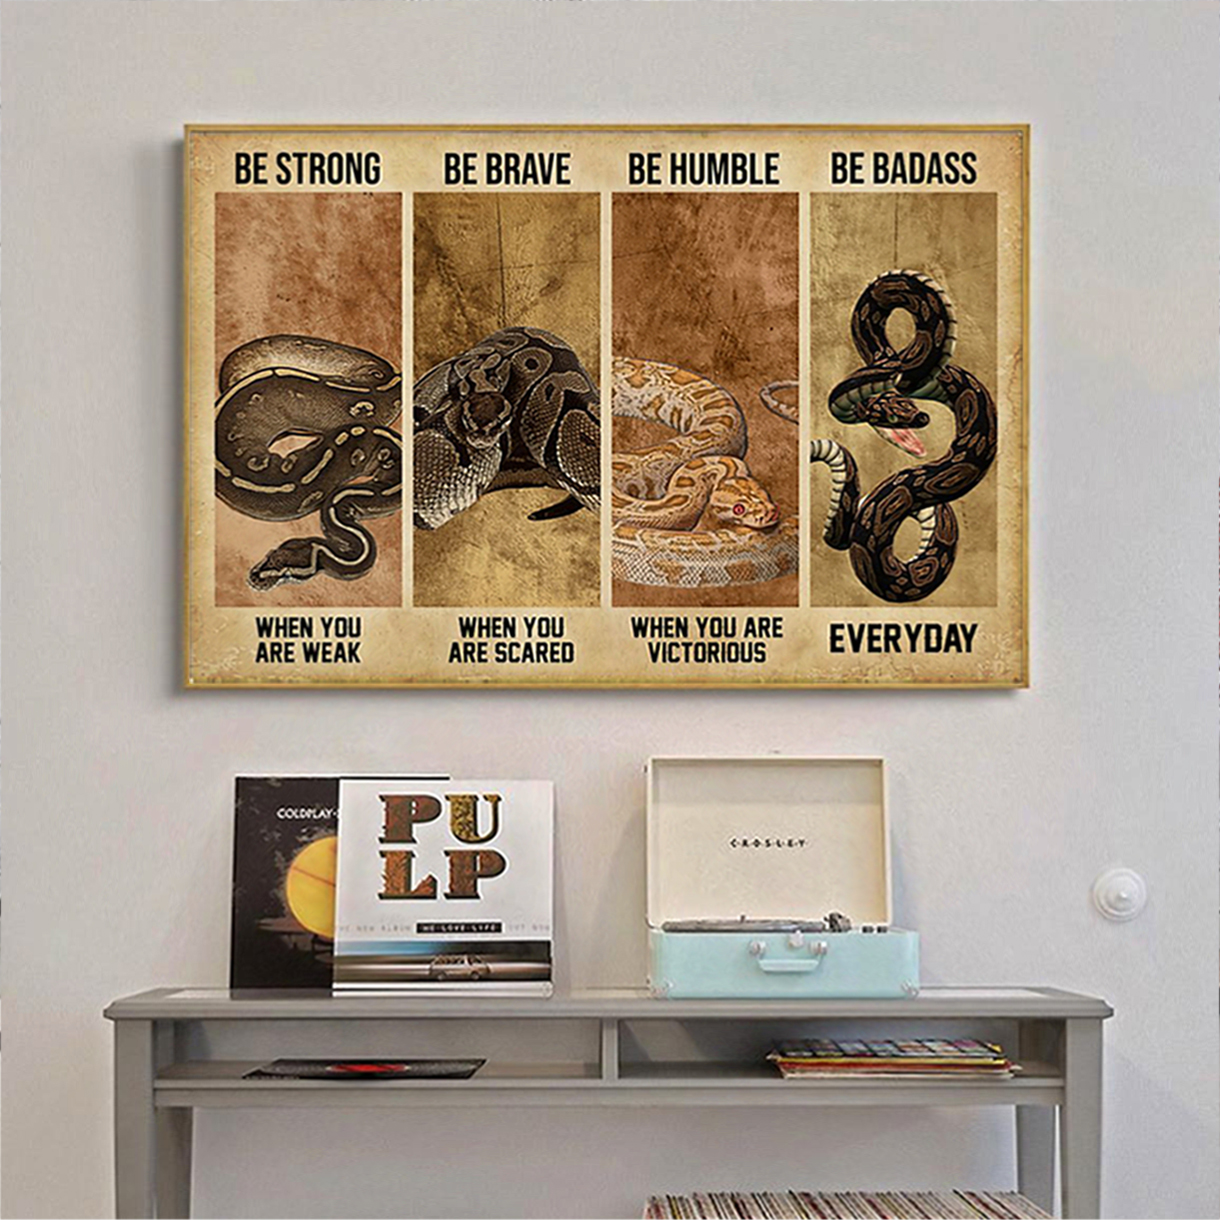 Ball python be strong be brave be humble be badass poster A1